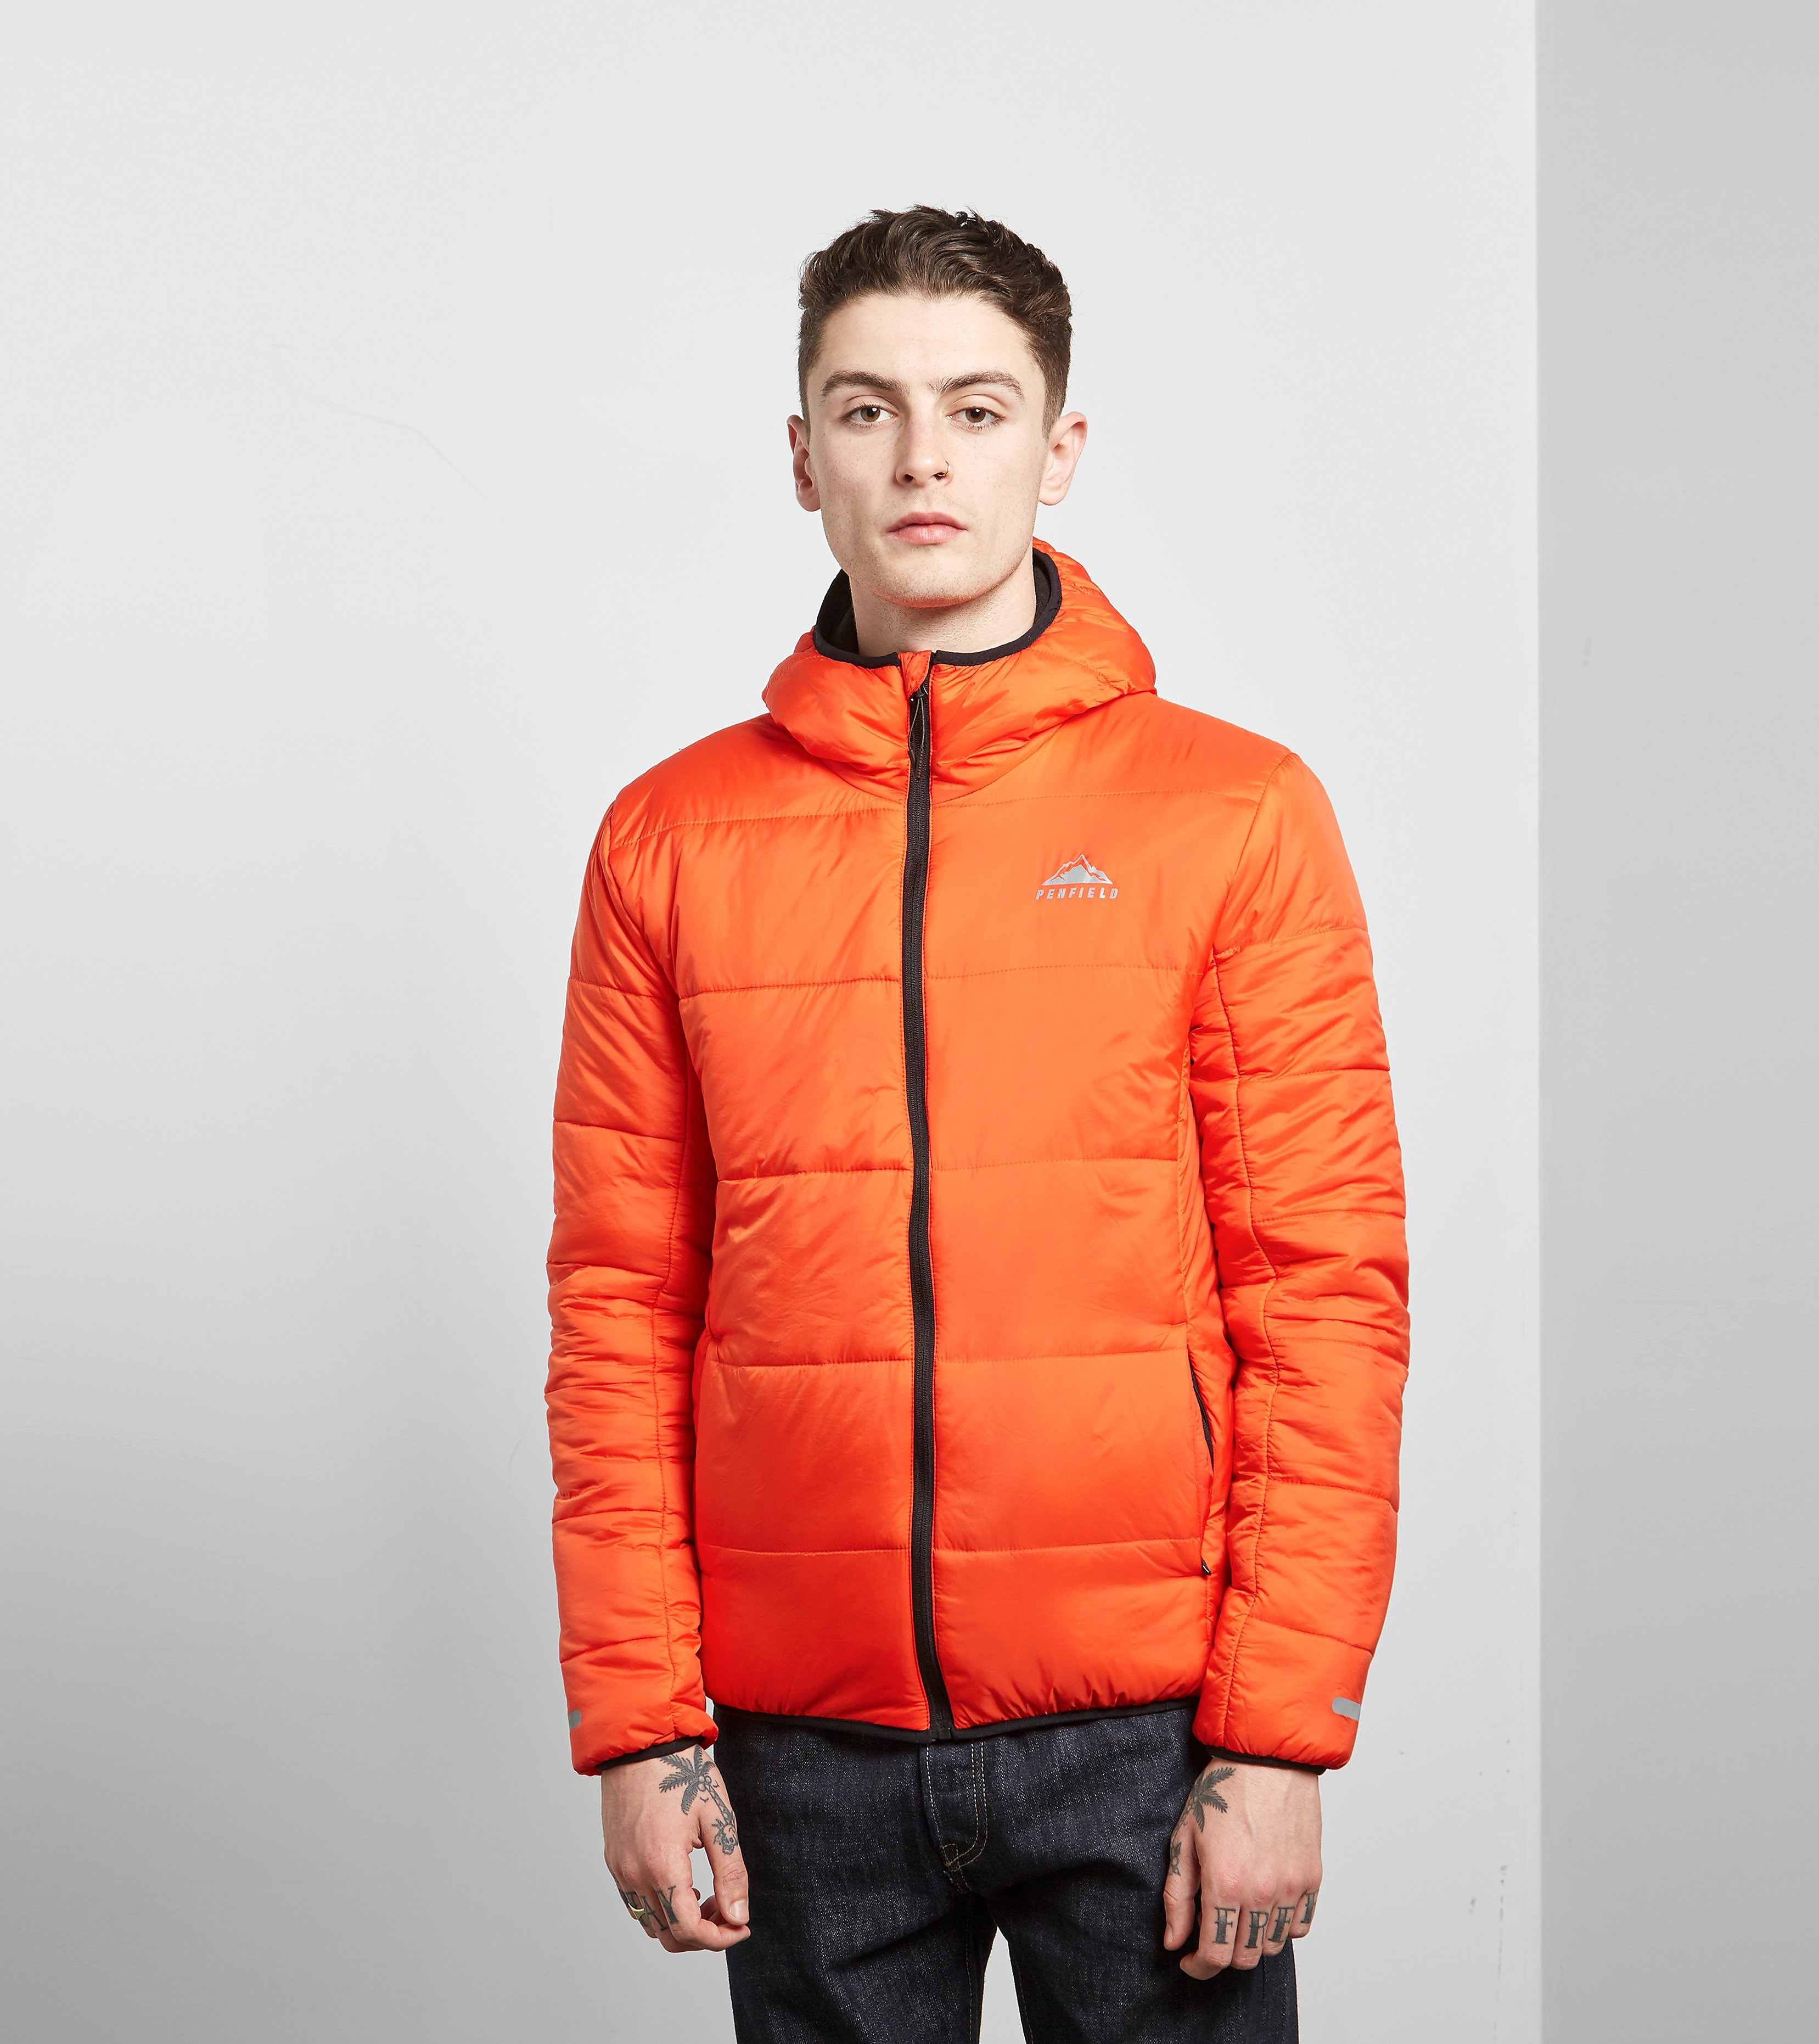 Penfield Schofield Jacket